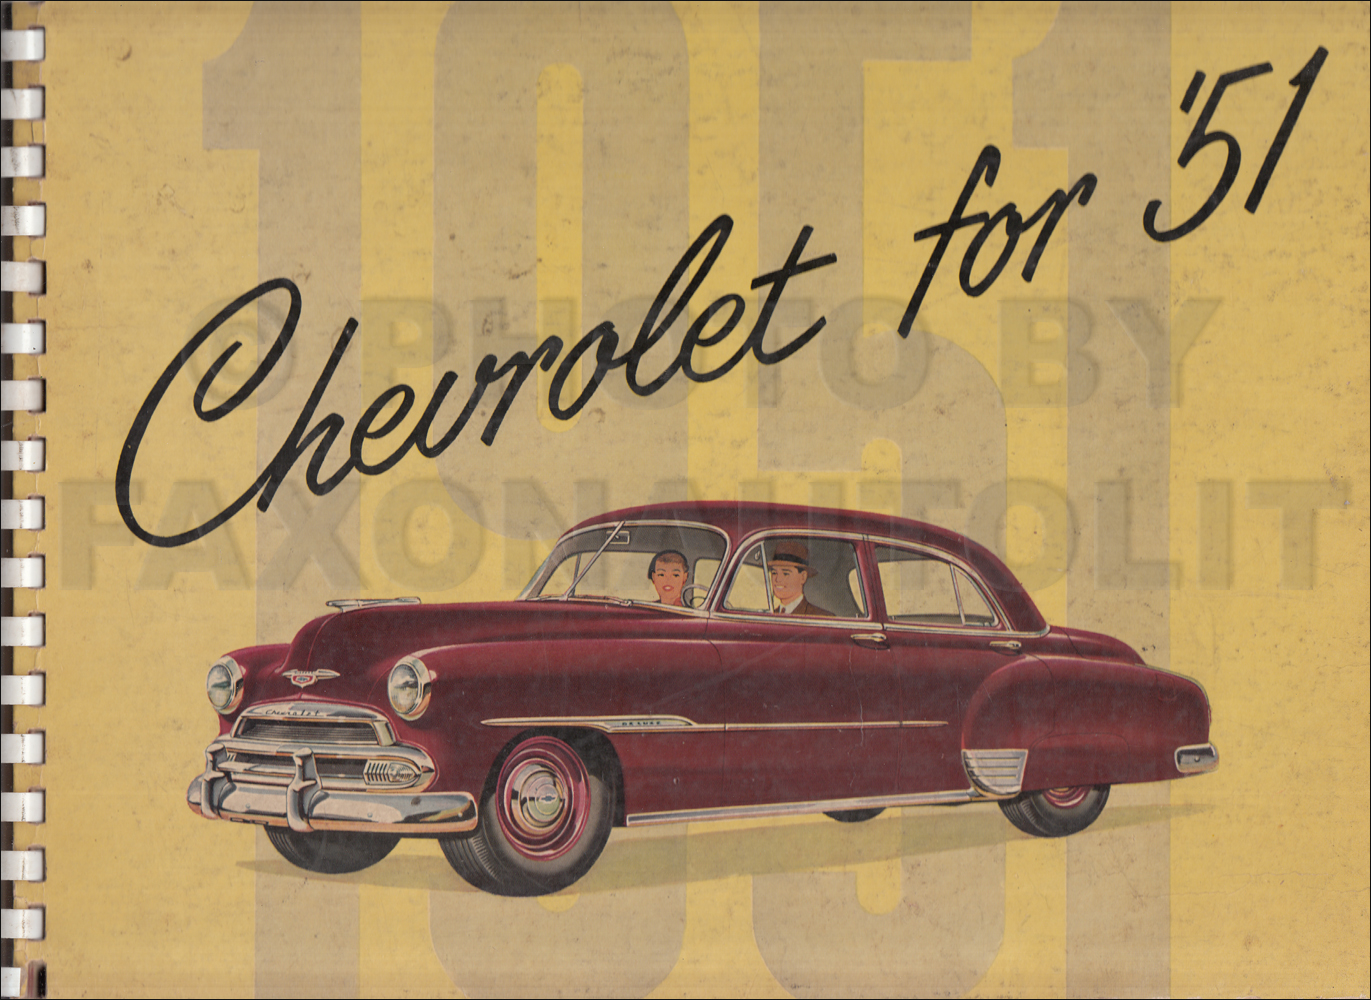 1951 Chevrolet Car Reprint Owners Manual 51 Chevy Sedan Delivery Dealer Album Original 44900